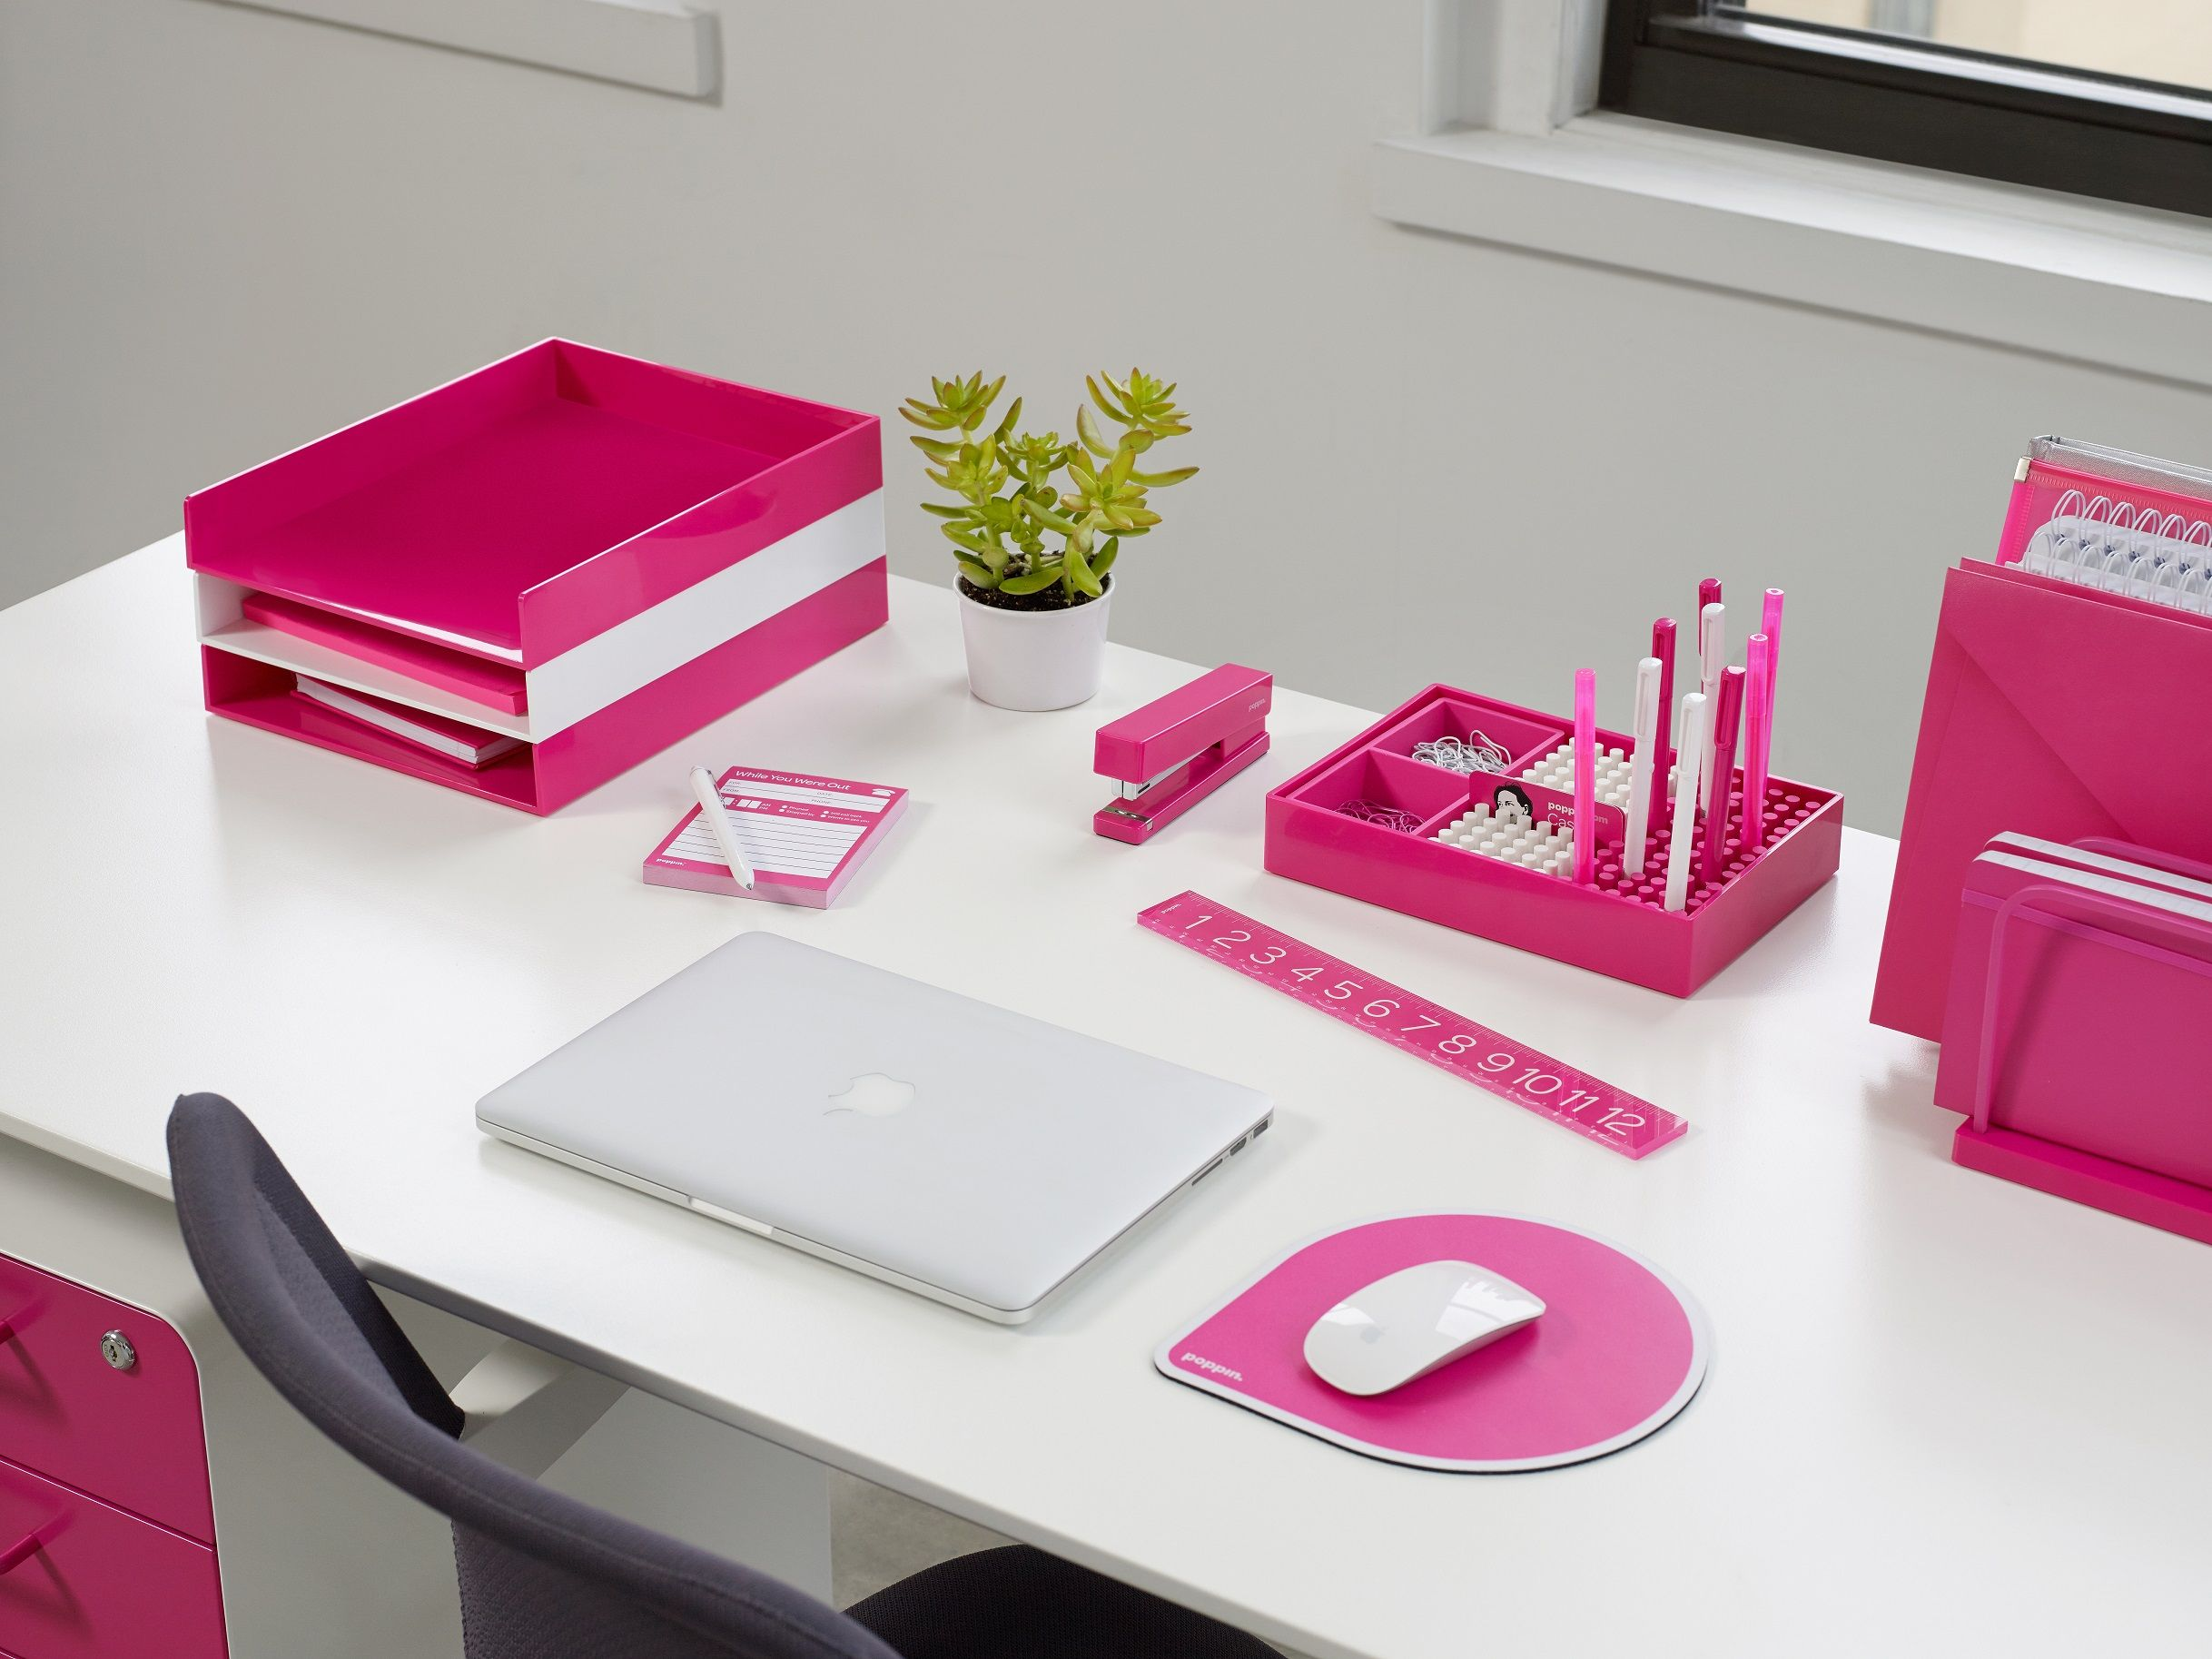 accessories desks decorating with glass set dusty desk smothery mirror office chair design childrens pink